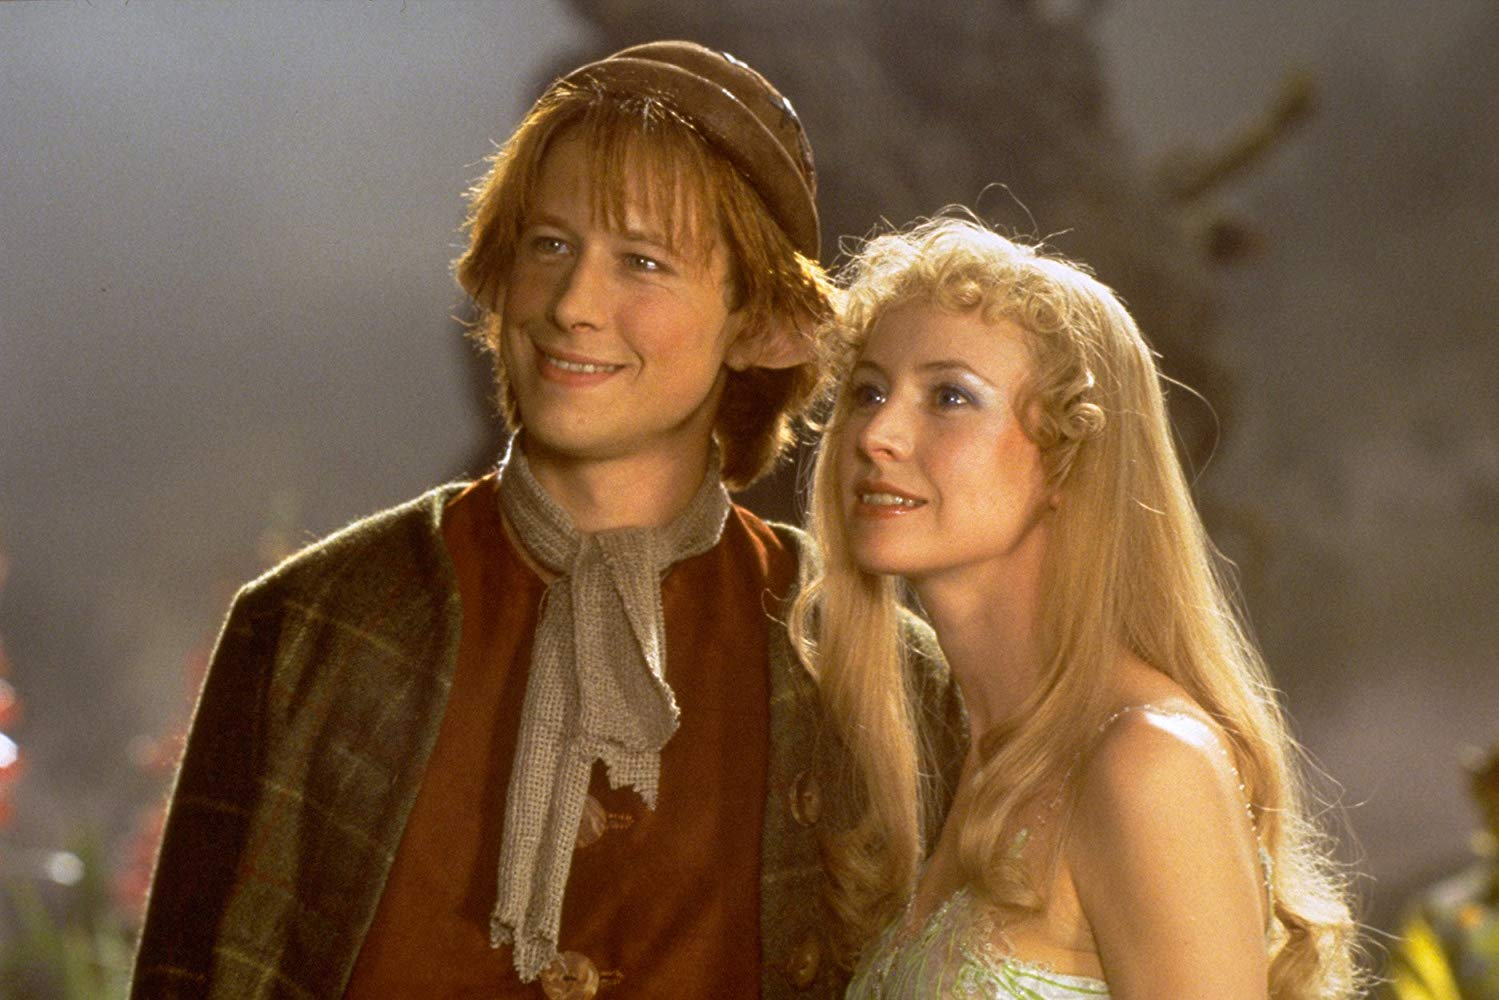 Daniel Betts and Caroline Carver in The Magical Land of the Leprechauns (1999)